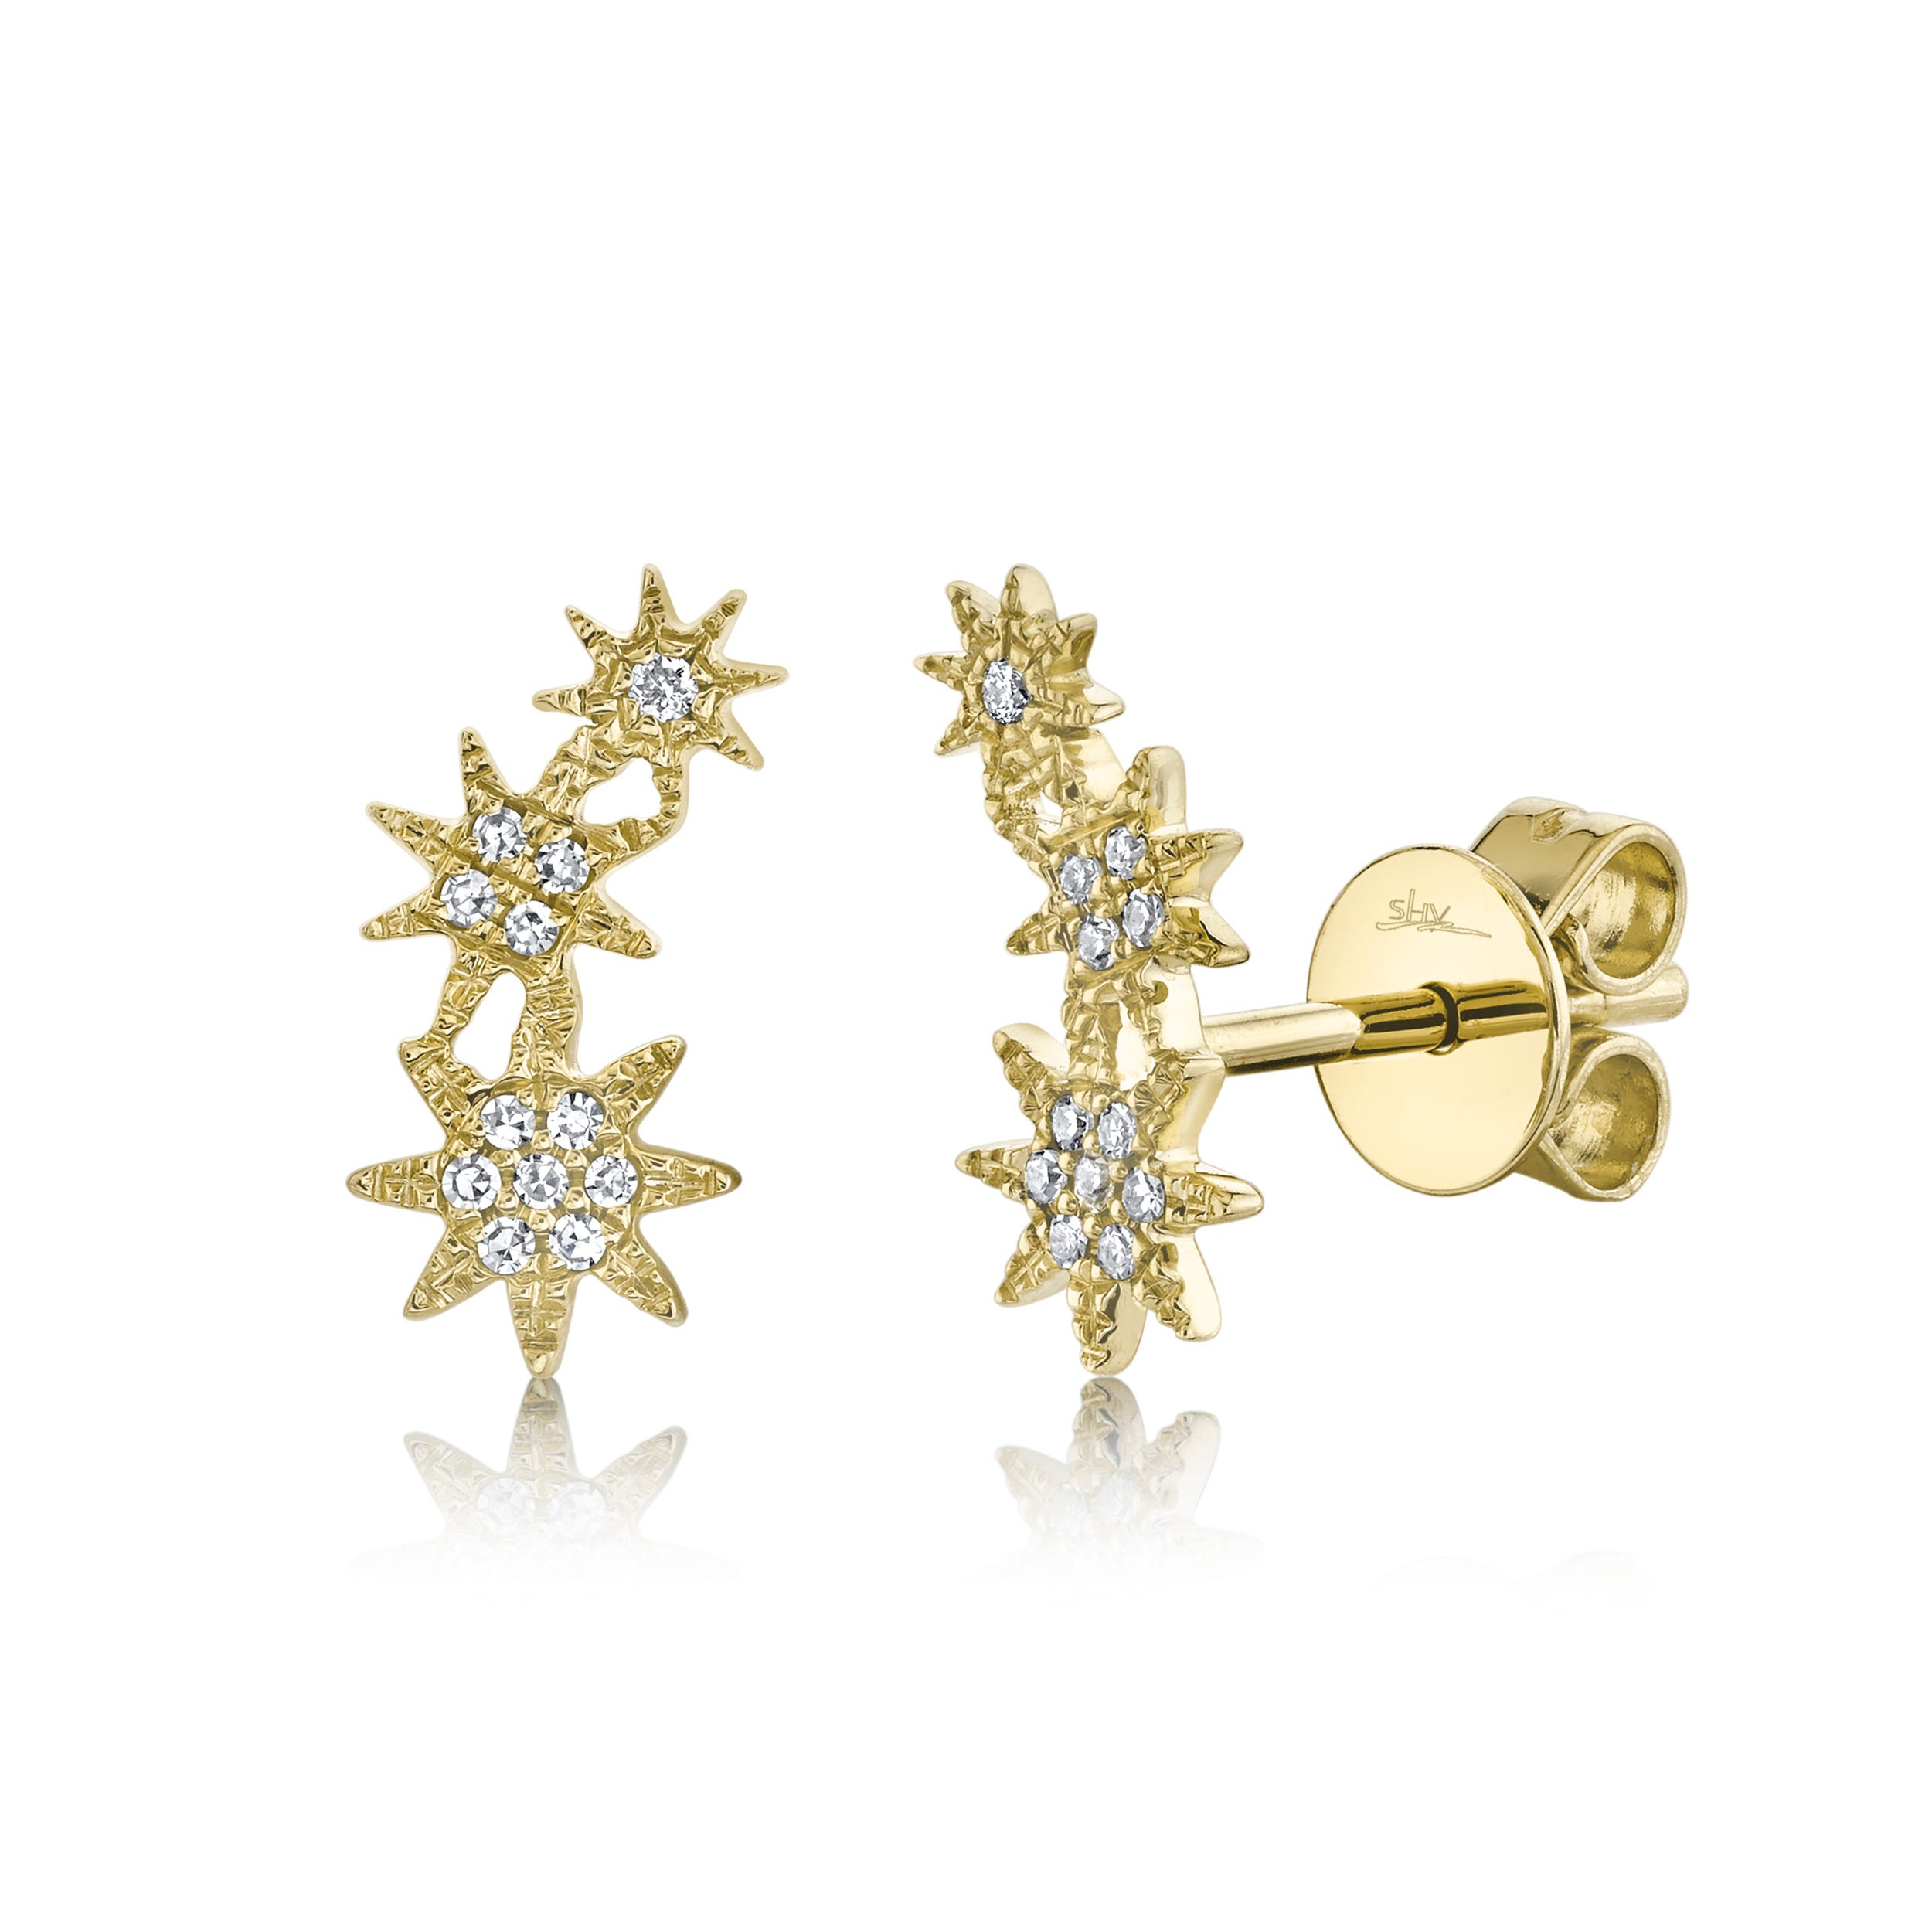 Shy Creation Diamond Star Climber Stud Earrings in 14k Yellow Gold SC55006158